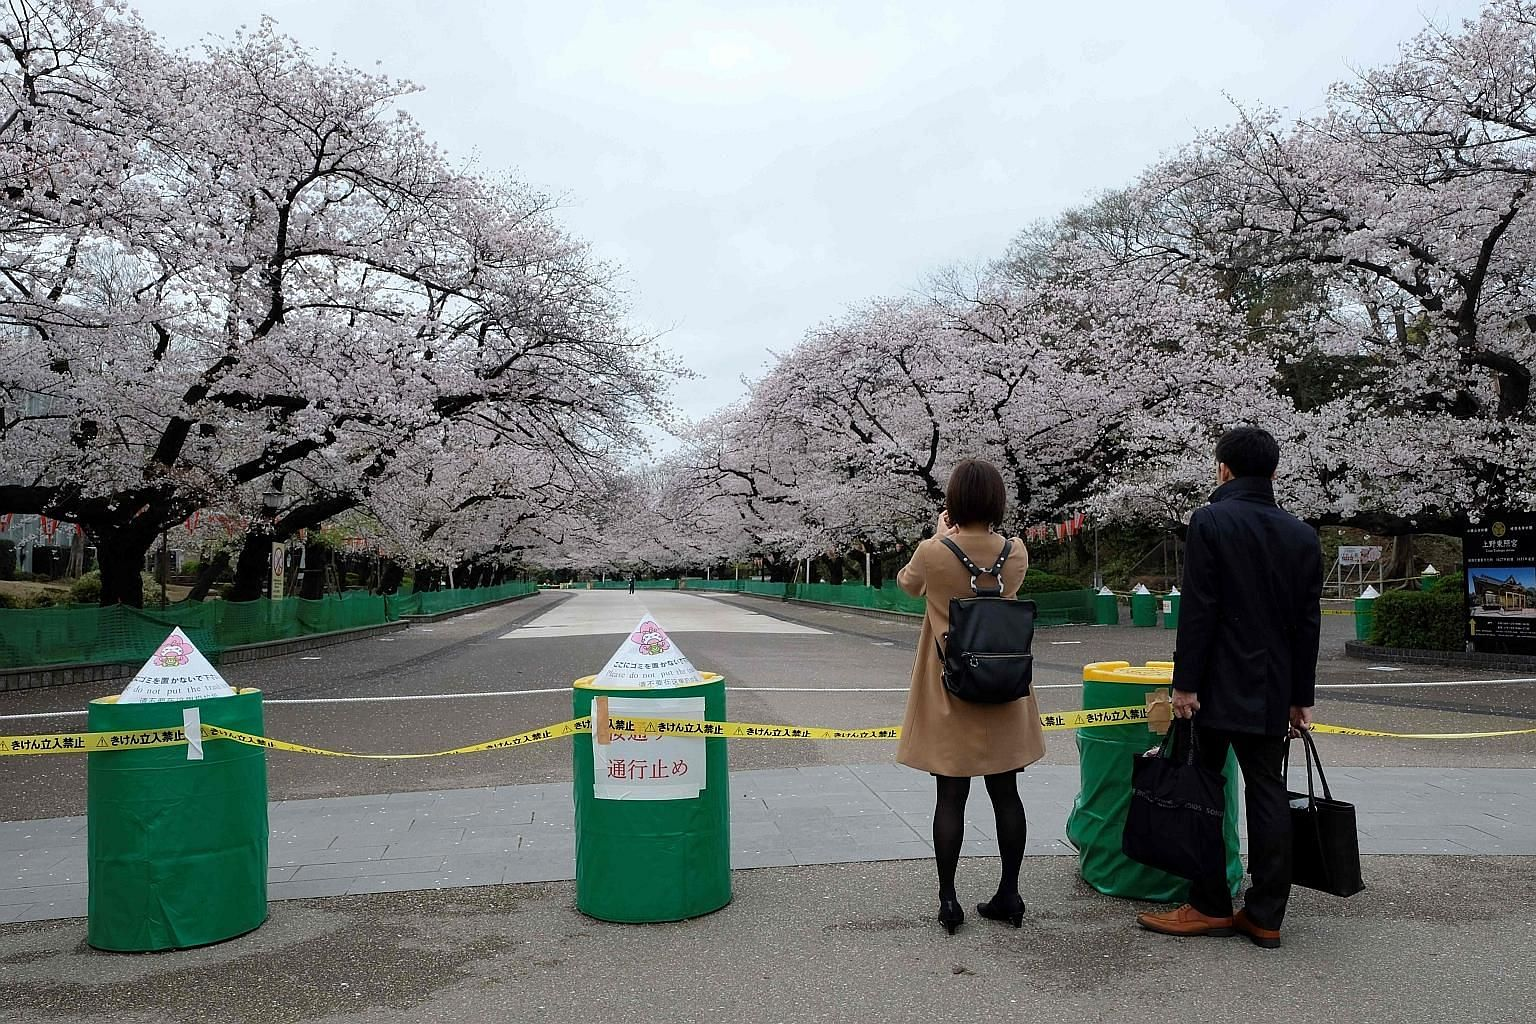 A couple viewing cherry blossoms at Ueno Park in Tokyo yesterday, in front of a road closure sign. Popular cherry blossom viewing sites like Shinjuku Gyoen and Ueno Park have closed or restricted access to the public to discourage outings. PHOTO: AGE